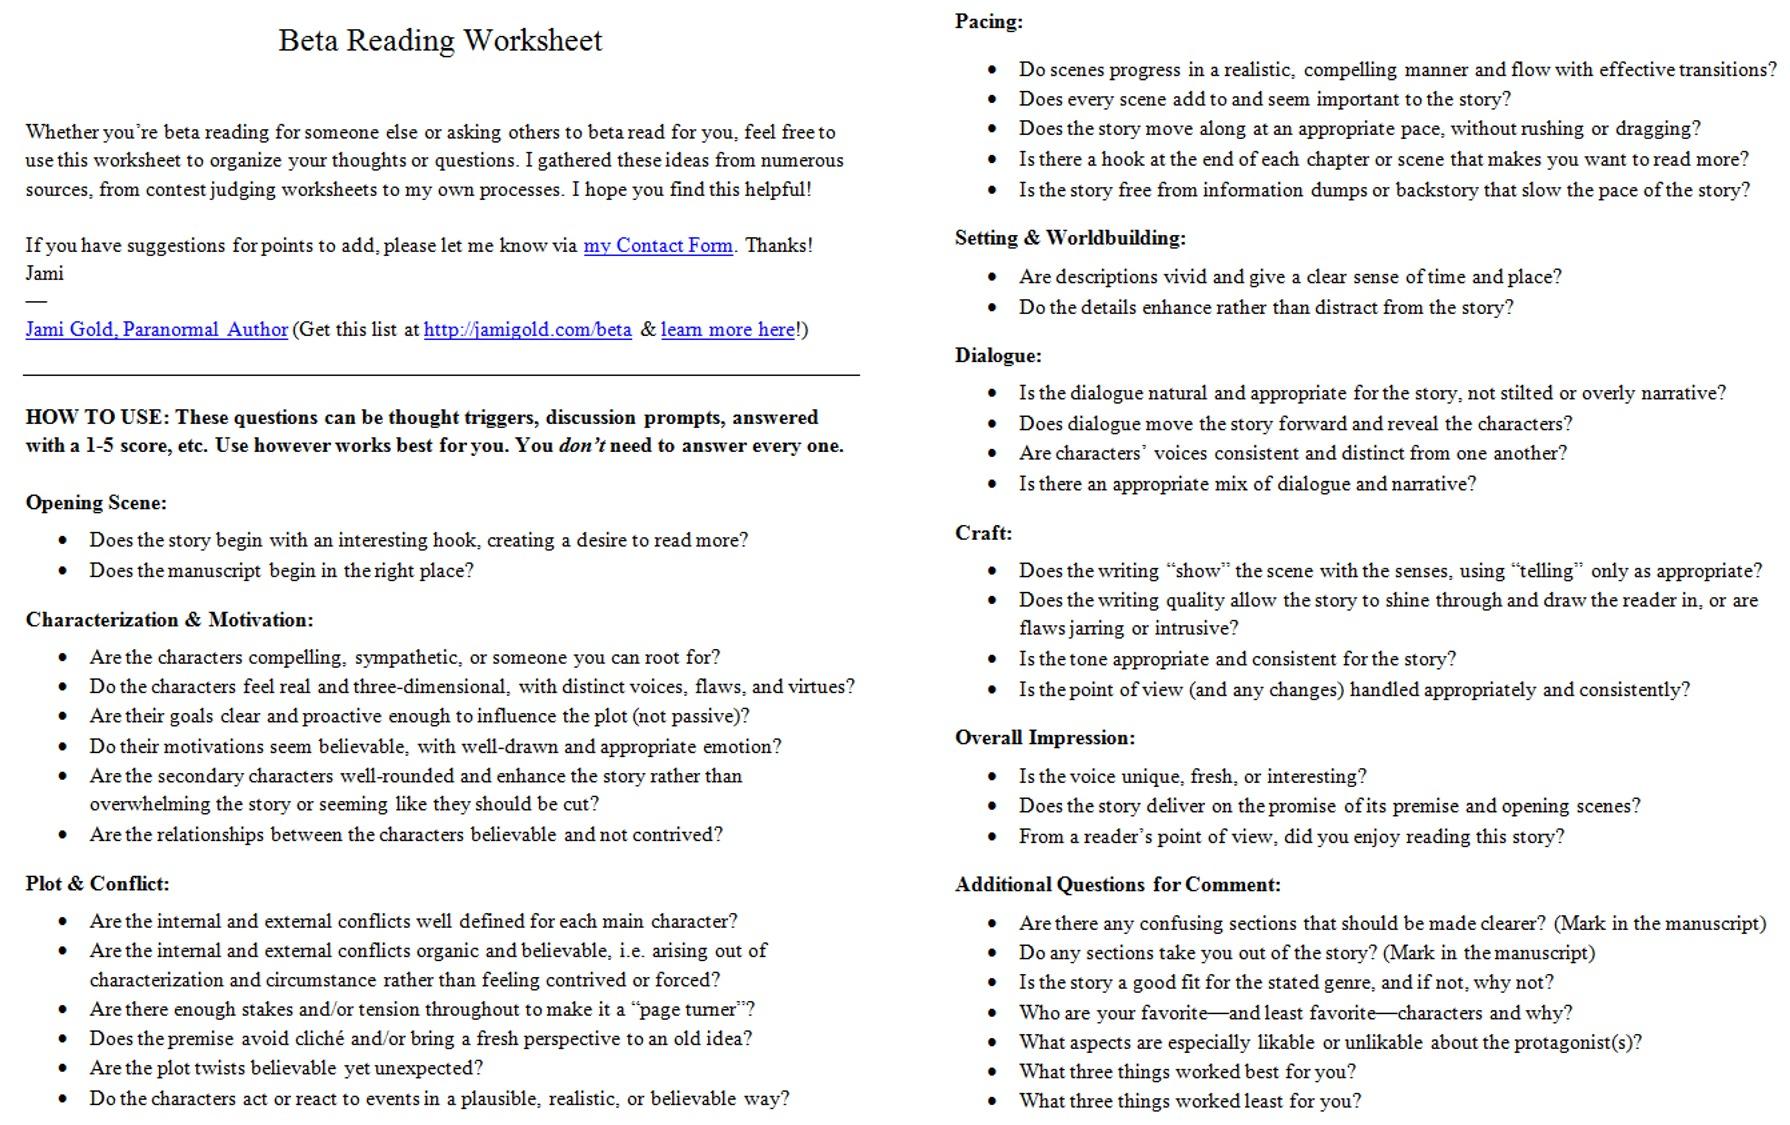 Proatmealus  Unusual Worksheets For Writers  Jami Gold Paranormal Author With Exciting Screen Shot Of The Twopage Beta Reading Worksheet With Amusing Center Worksheet Excel Also Free Middle School Math Worksheets In Addition Kindergarten Free Math Worksheets And Punnett Squares Practice Worksheet As Well As Braille Worksheets Additionally Baby Animal Names Worksheet From Jamigoldcom With Proatmealus  Exciting Worksheets For Writers  Jami Gold Paranormal Author With Amusing Screen Shot Of The Twopage Beta Reading Worksheet And Unusual Center Worksheet Excel Also Free Middle School Math Worksheets In Addition Kindergarten Free Math Worksheets From Jamigoldcom